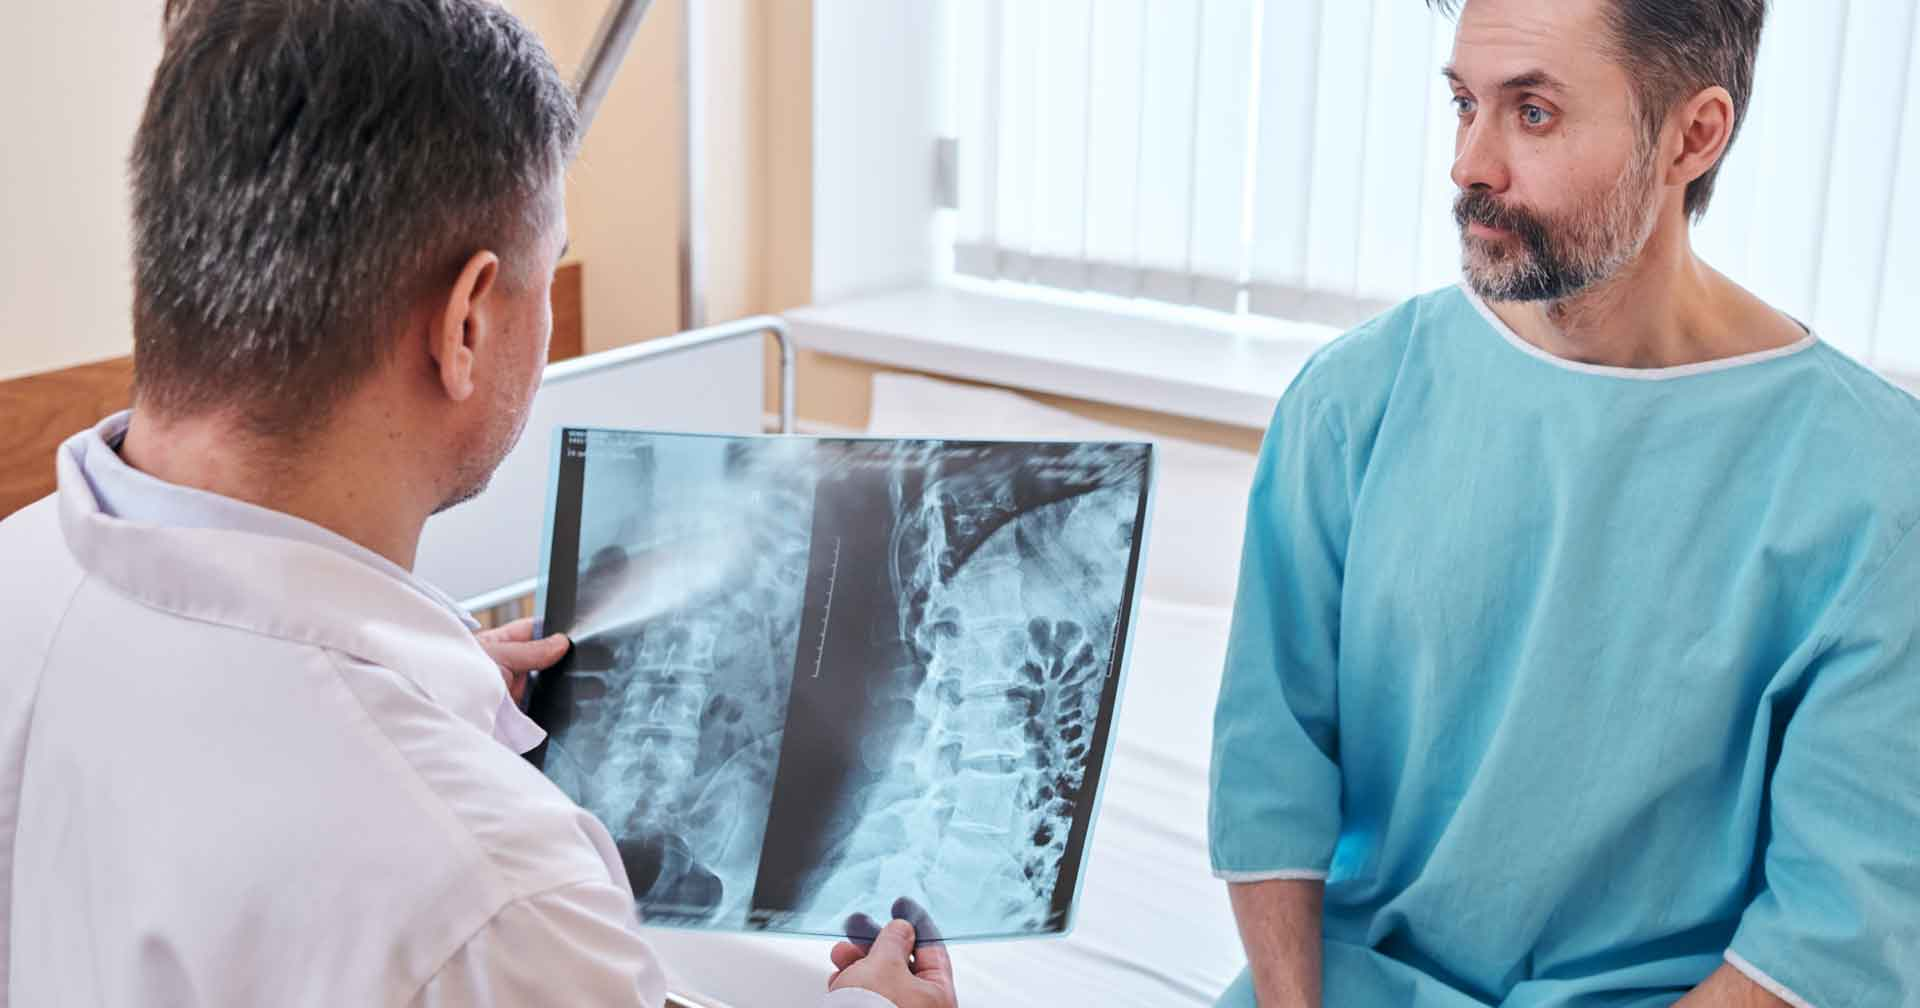 Doctor is checking the spinal disk of a patient and examining the xray of the spinal cord